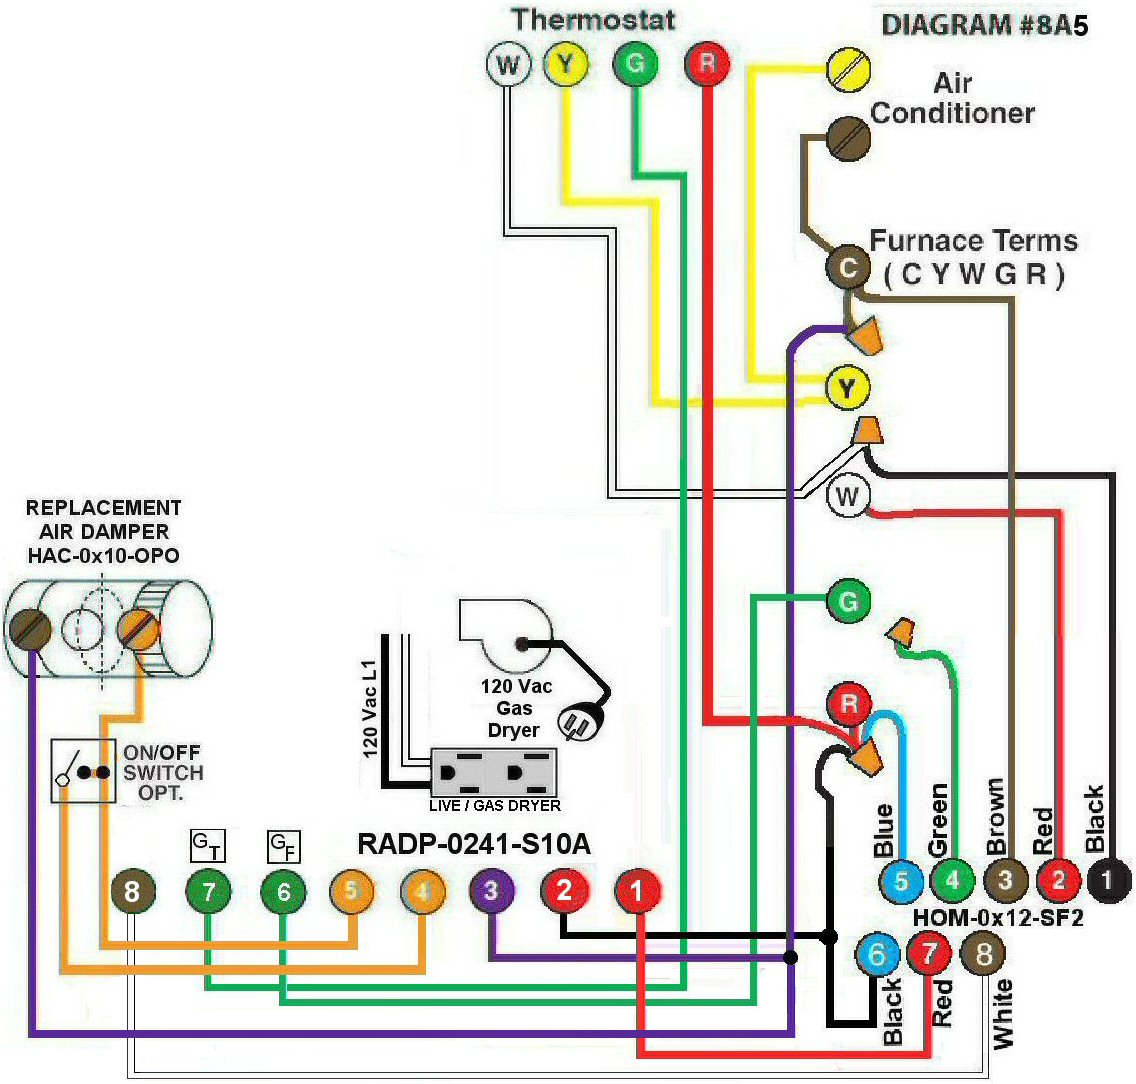 kenmore electric water heater wiring diagram 2001 focus headlight gas fireplace pilot won t light. diy: won't light how to clean your . ...